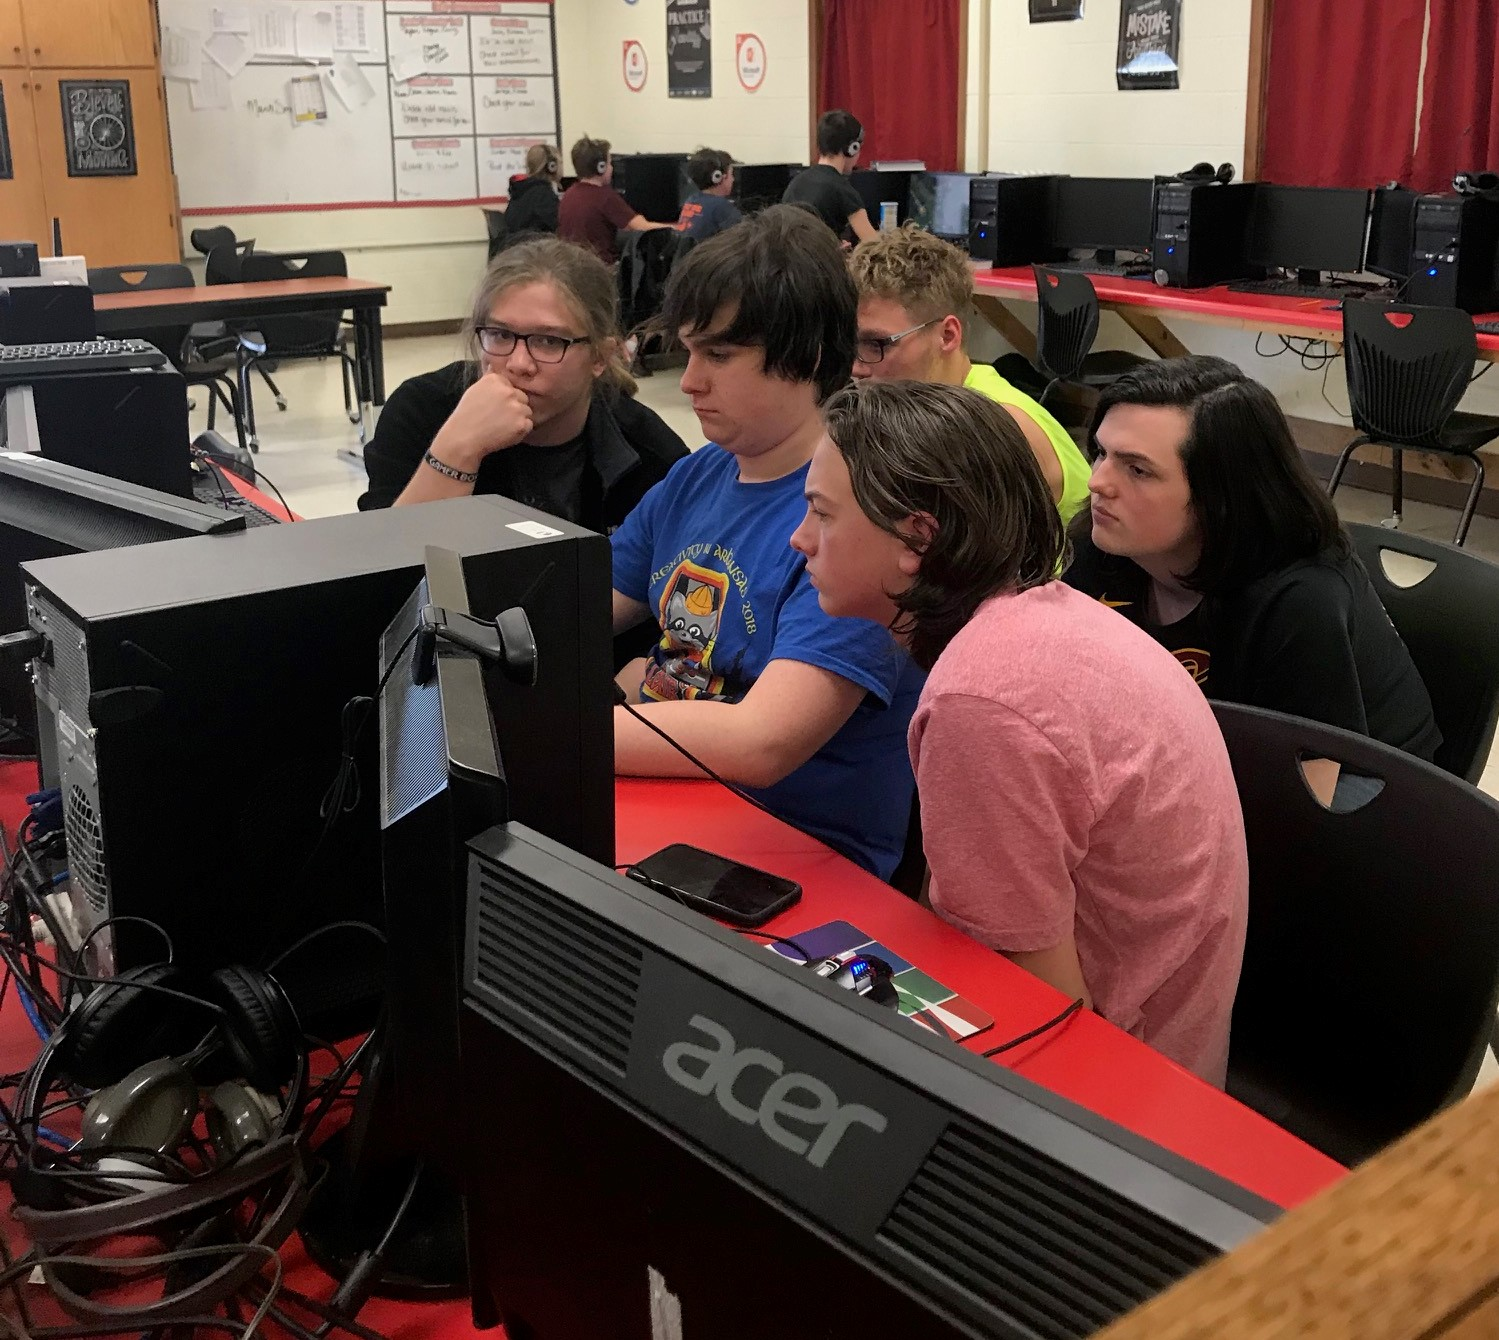 Photo of the members of a club crowded around a computer